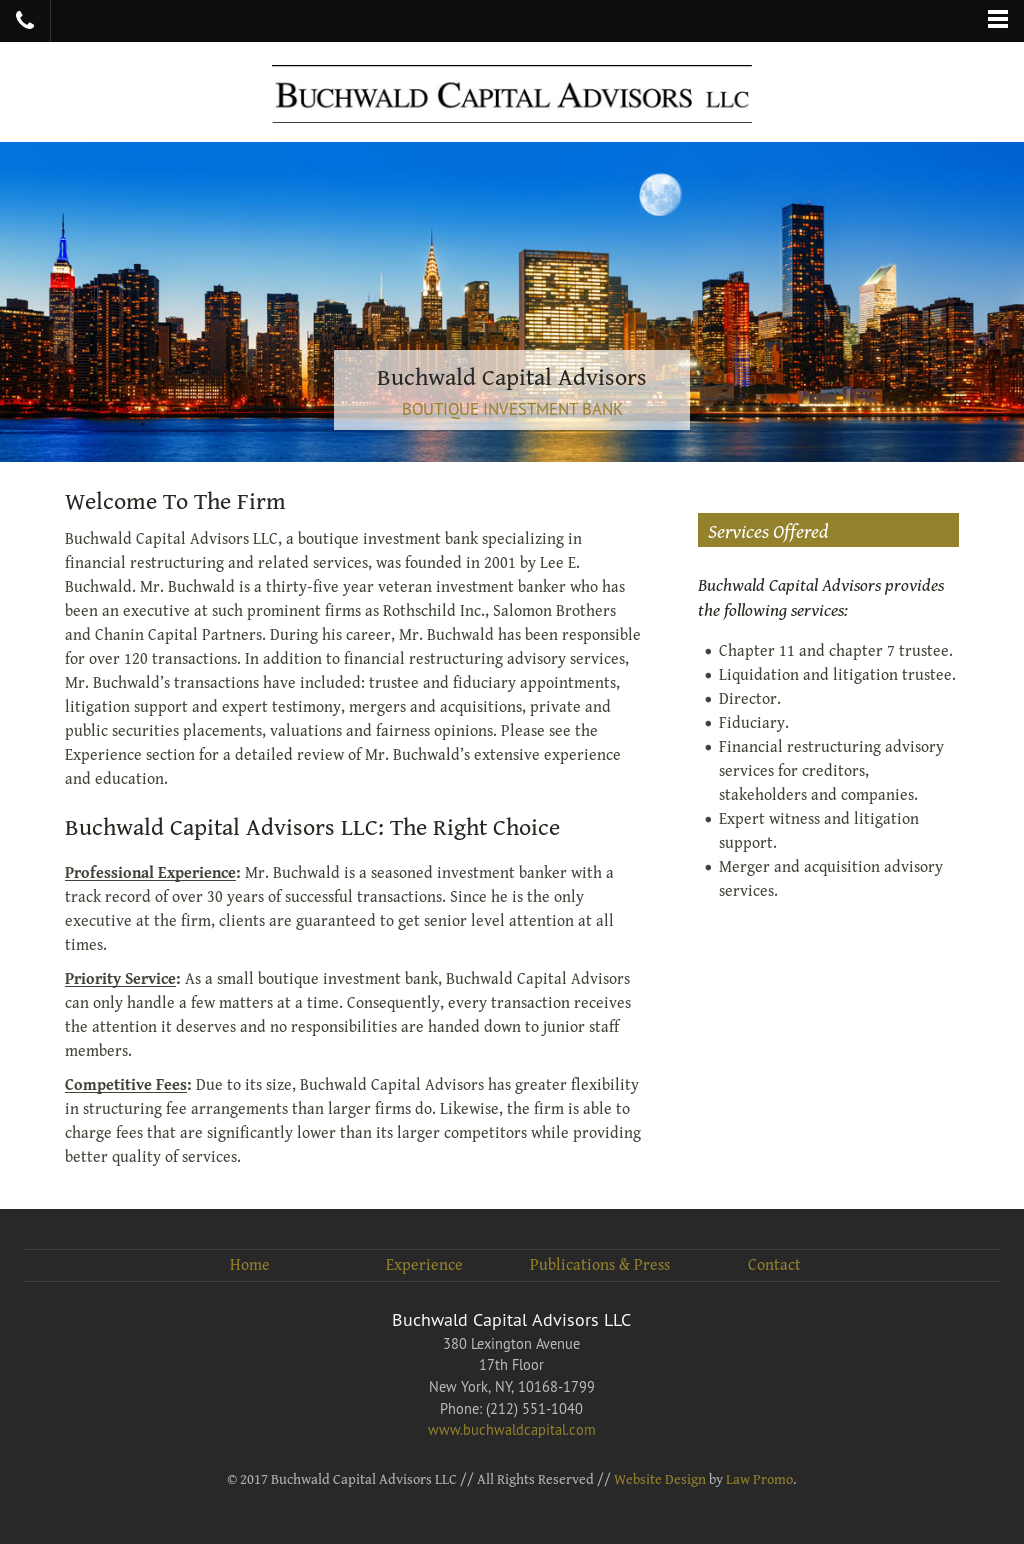 Buchwald Capital Advisors Competitors, Revenue and Employees - Owler